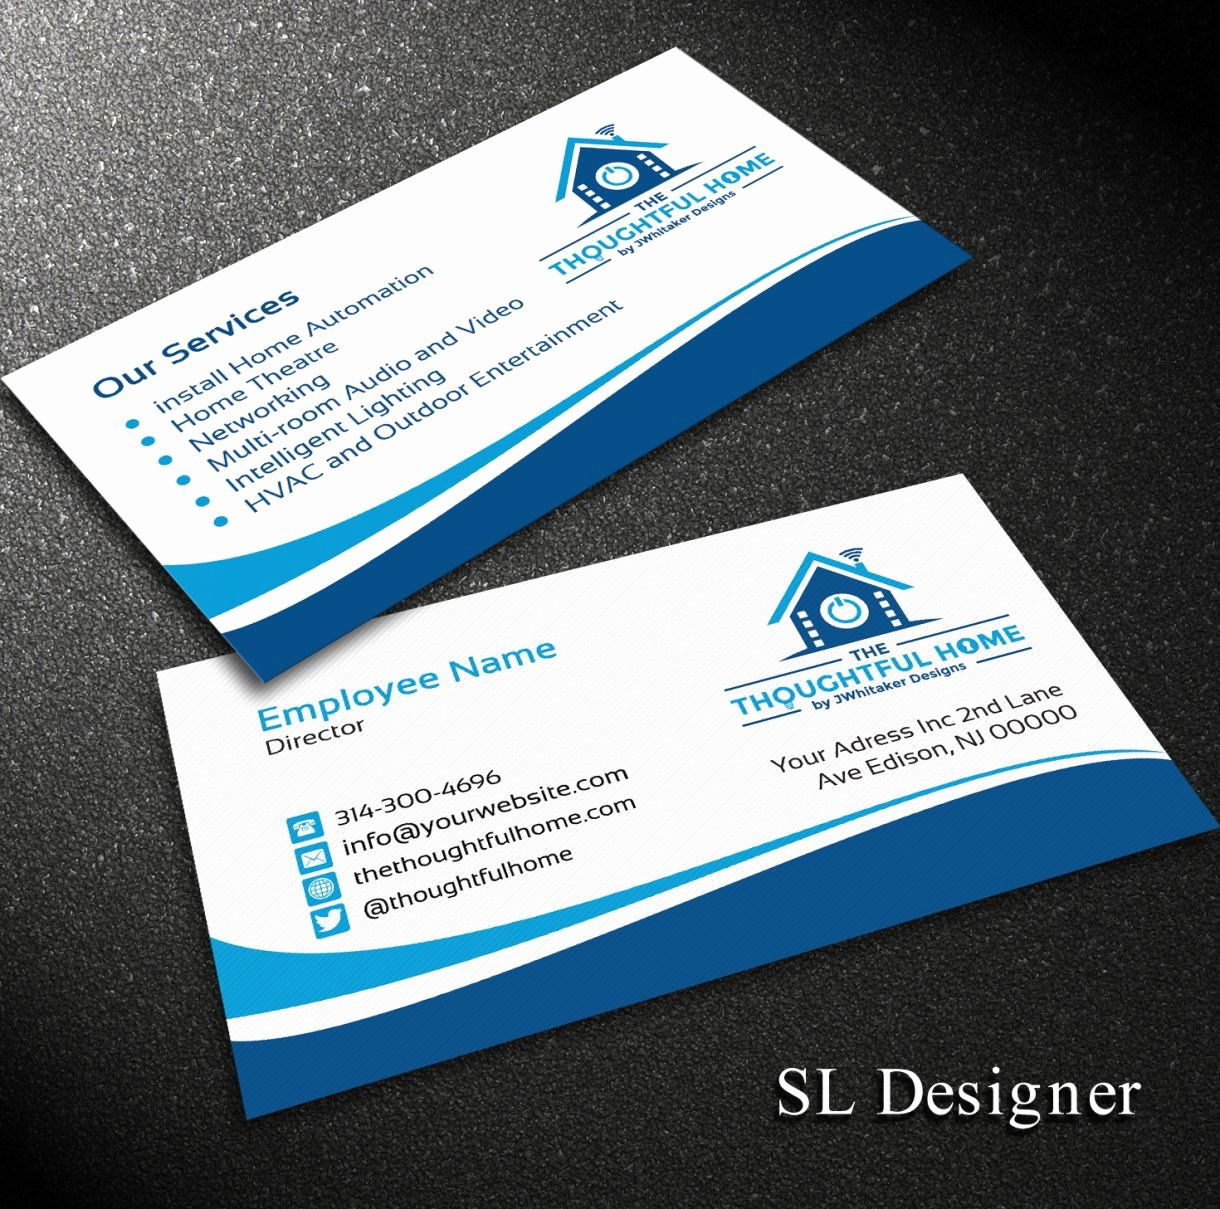 Networking Business Card Template Elegant Business Cards for Networking Choice Image Business Card